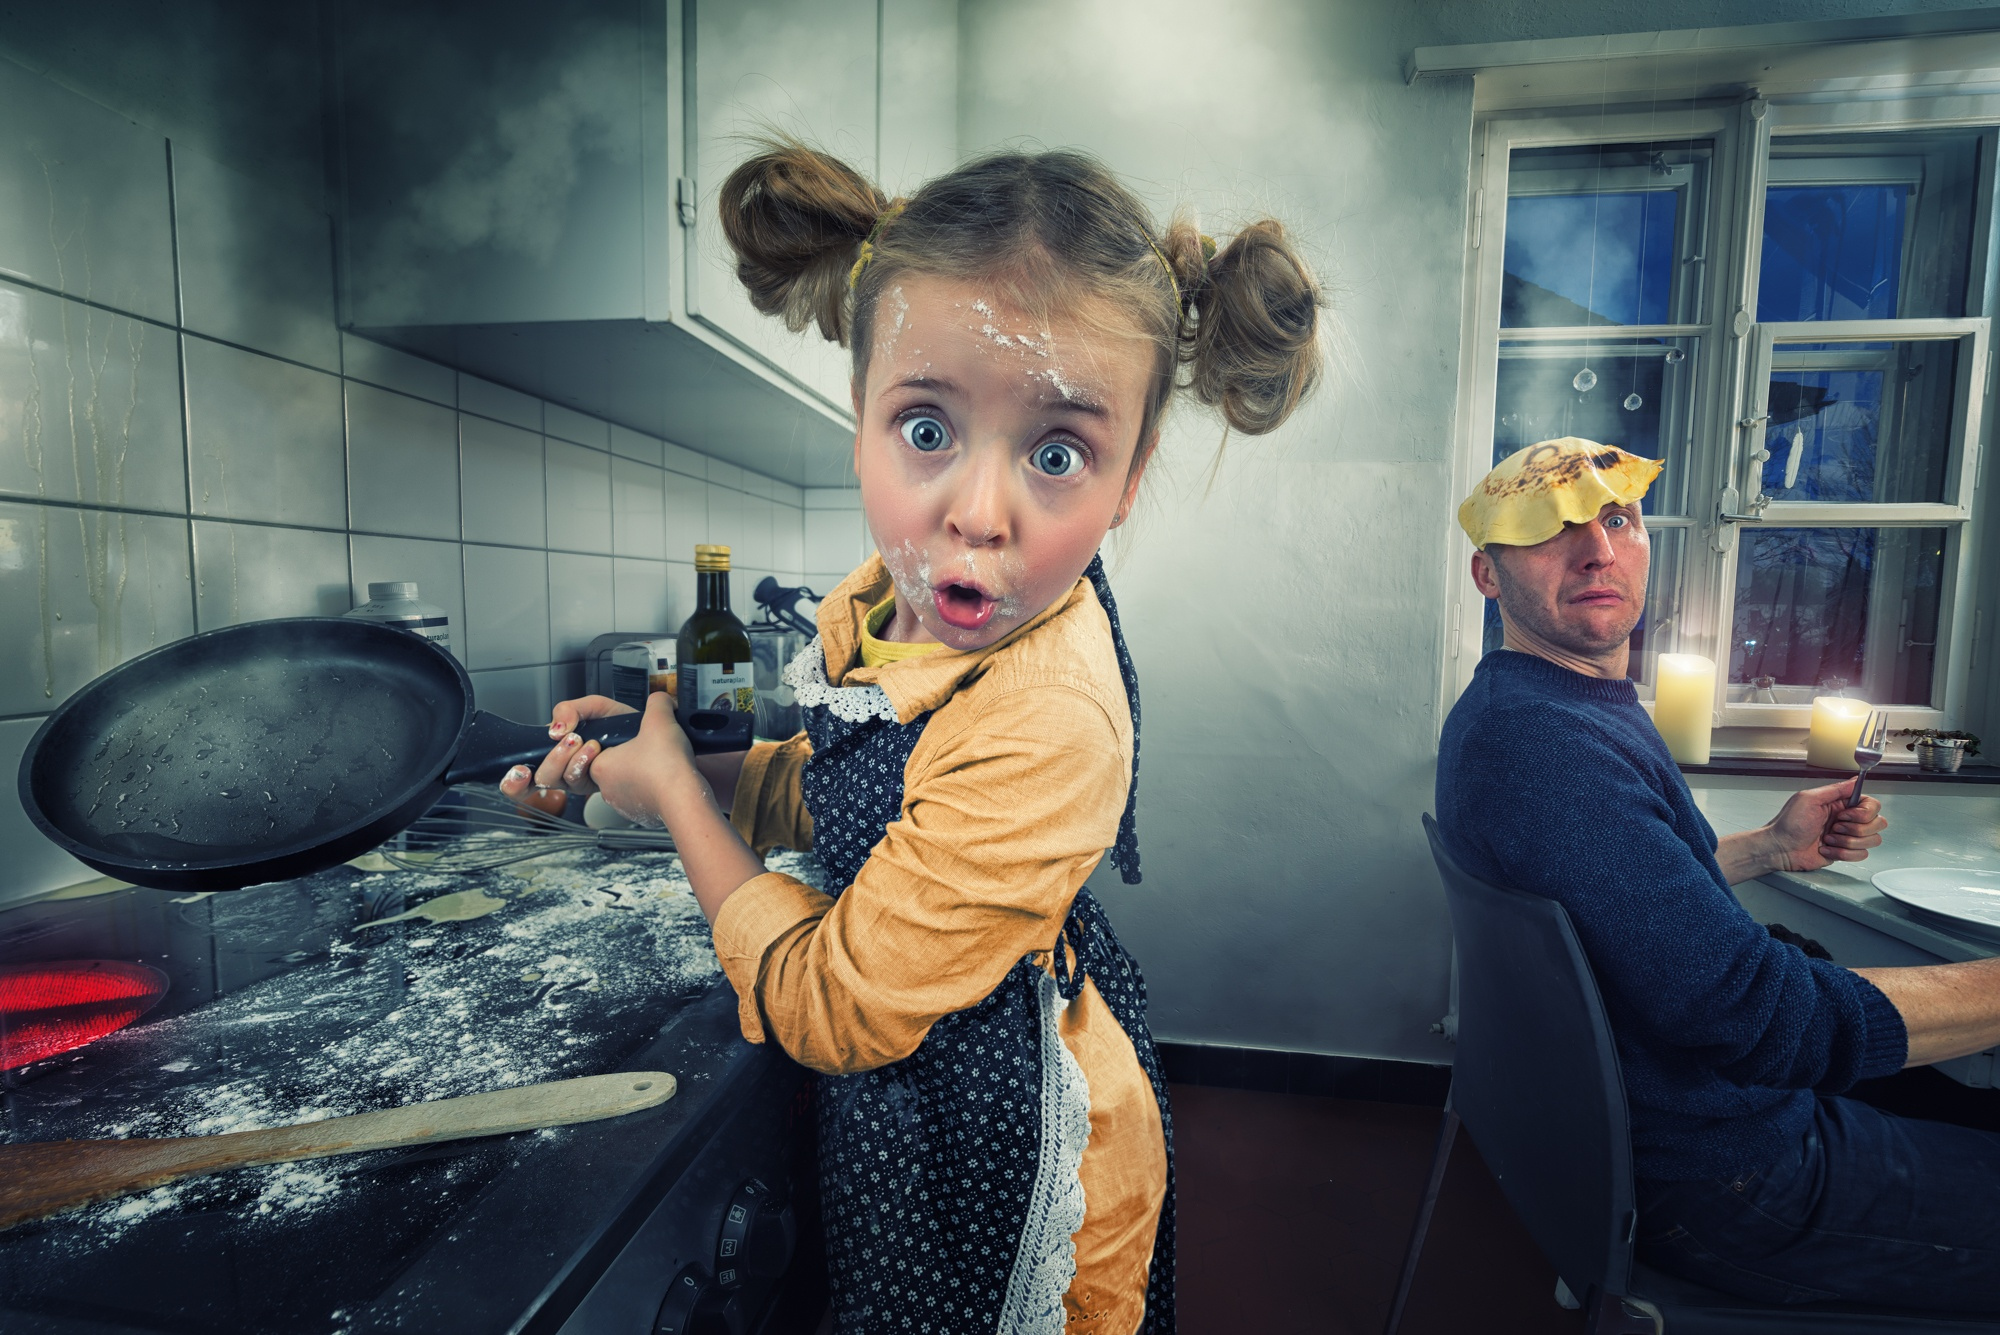 by John Wilhelm is a photoholic